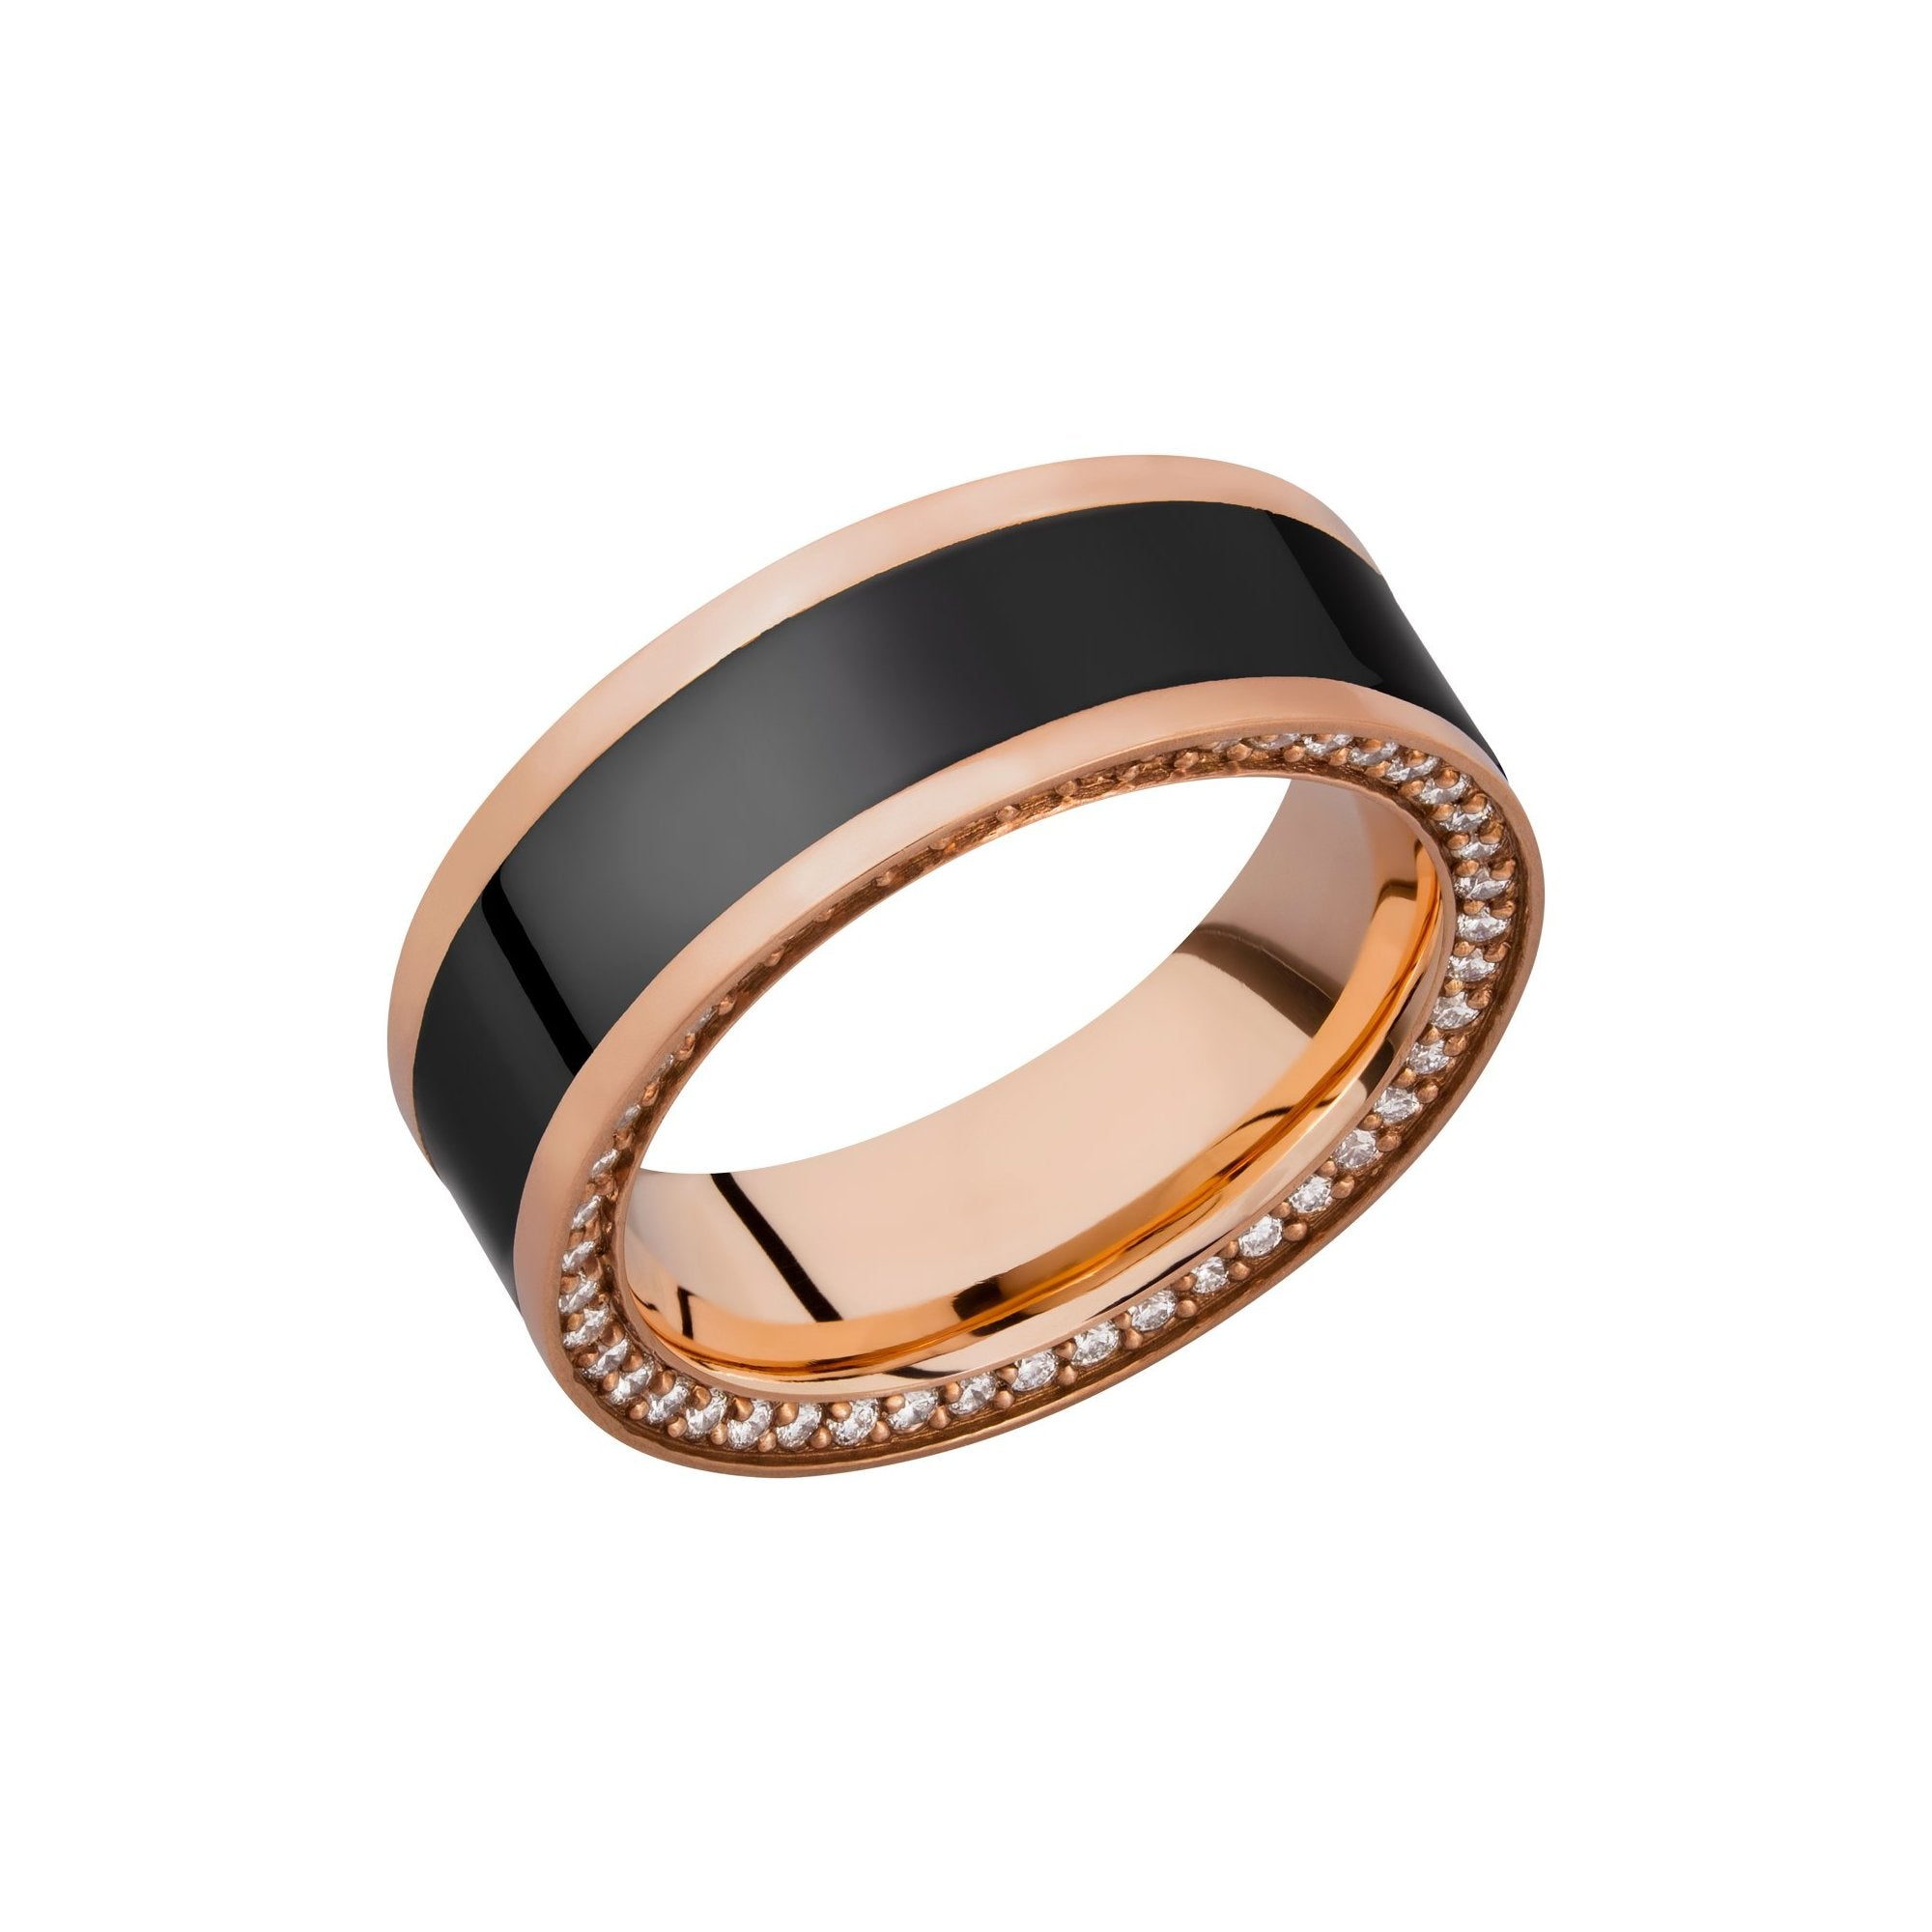 Zeus 18k Rose Gold Band with Elysium Black Diamond Inlay and a Reverse Diamond Bevel - Talisman Collection Fine Jewelers